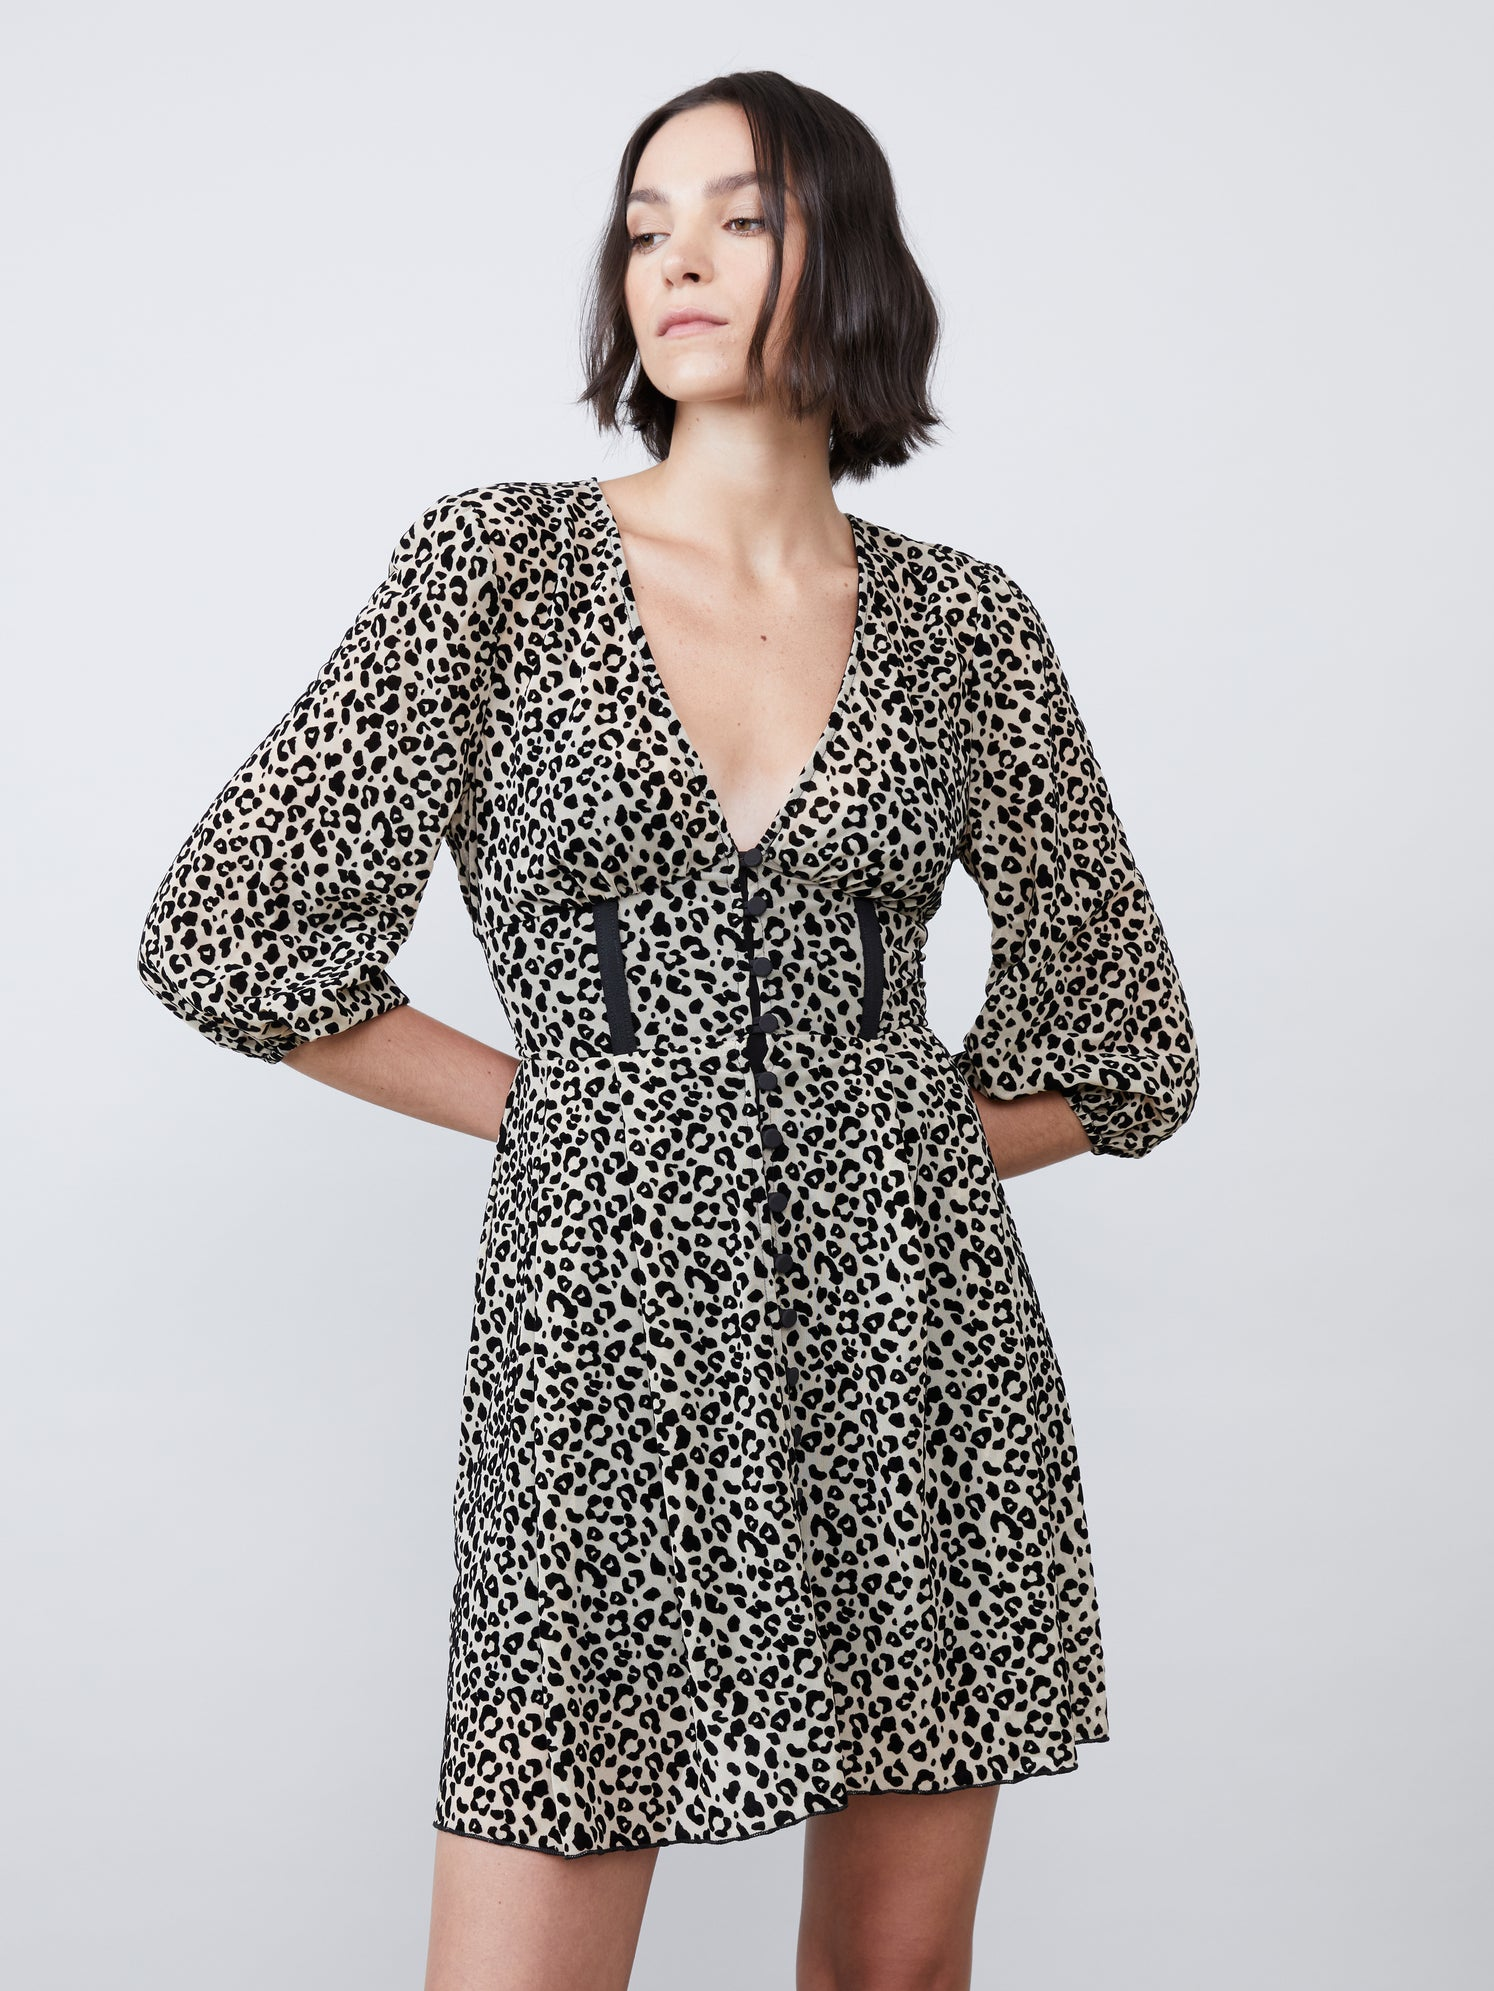 Flocked leopard mesh v neck button front 3/4 sleeve mini dress Alternate